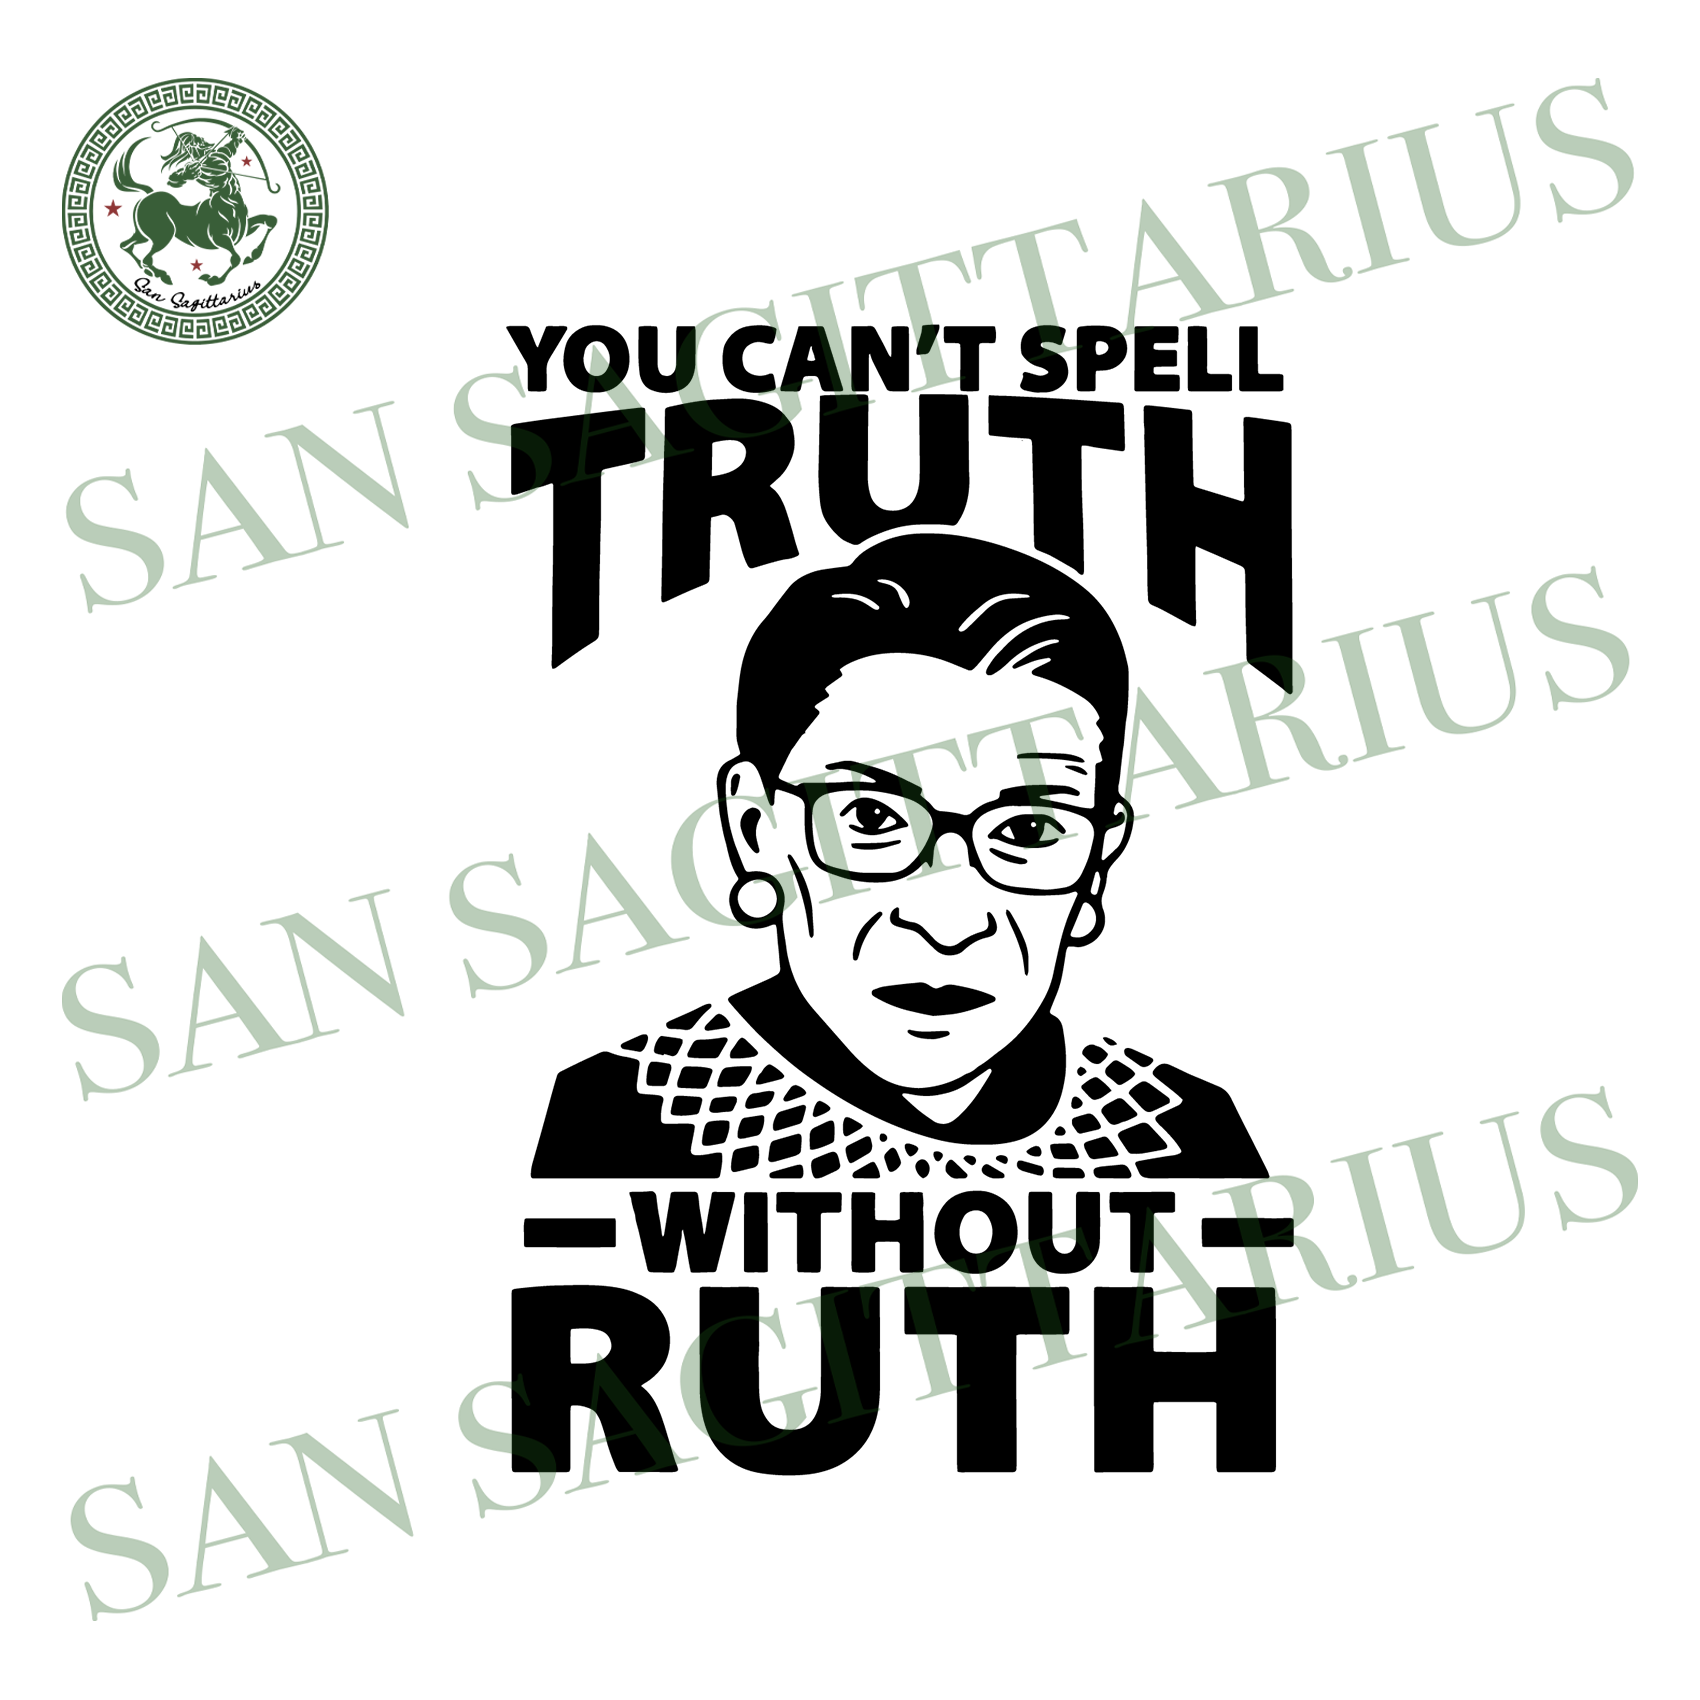 Ruth Cant Spell Truth Without Ruth Svg,Notorious Rbg Svg,Ruth Bader Ginsburg Svg,Feminist Shirt,Vintage Ruth Bader Ginsburg Svg,Human Rights, Queen Crown Supreme Court